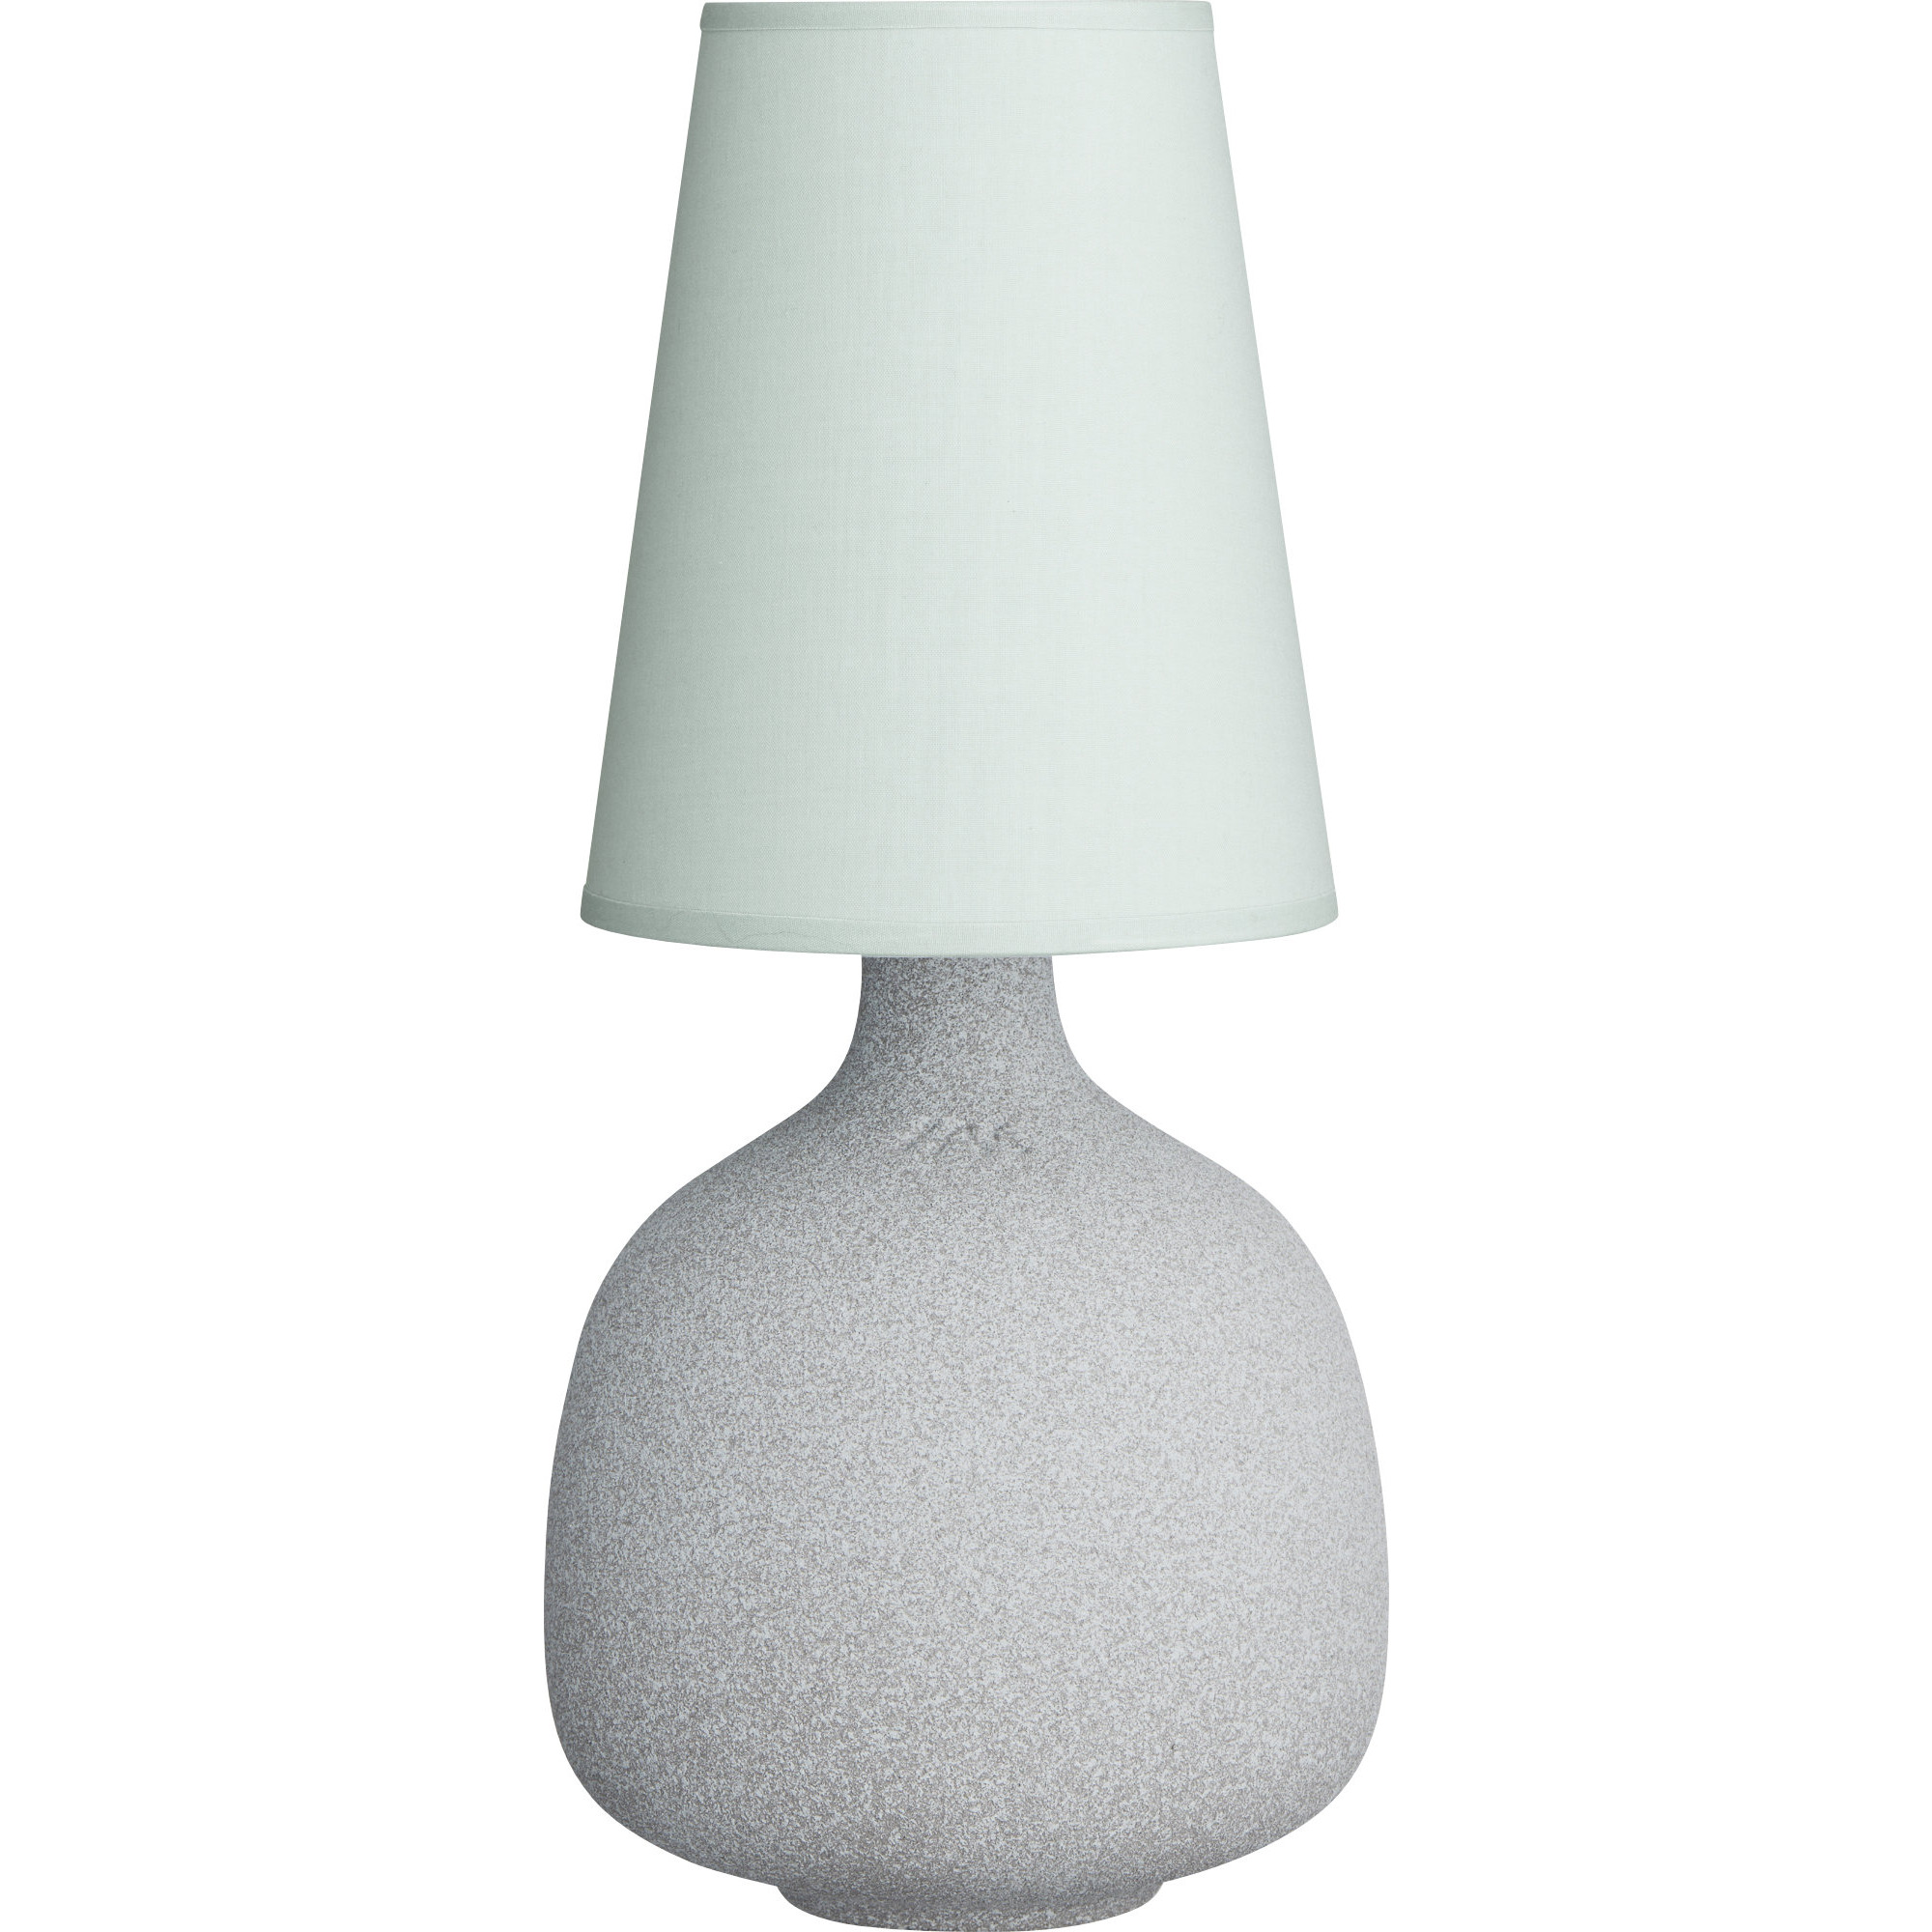 Kähler Balustre Bordslampa Dusty Blue